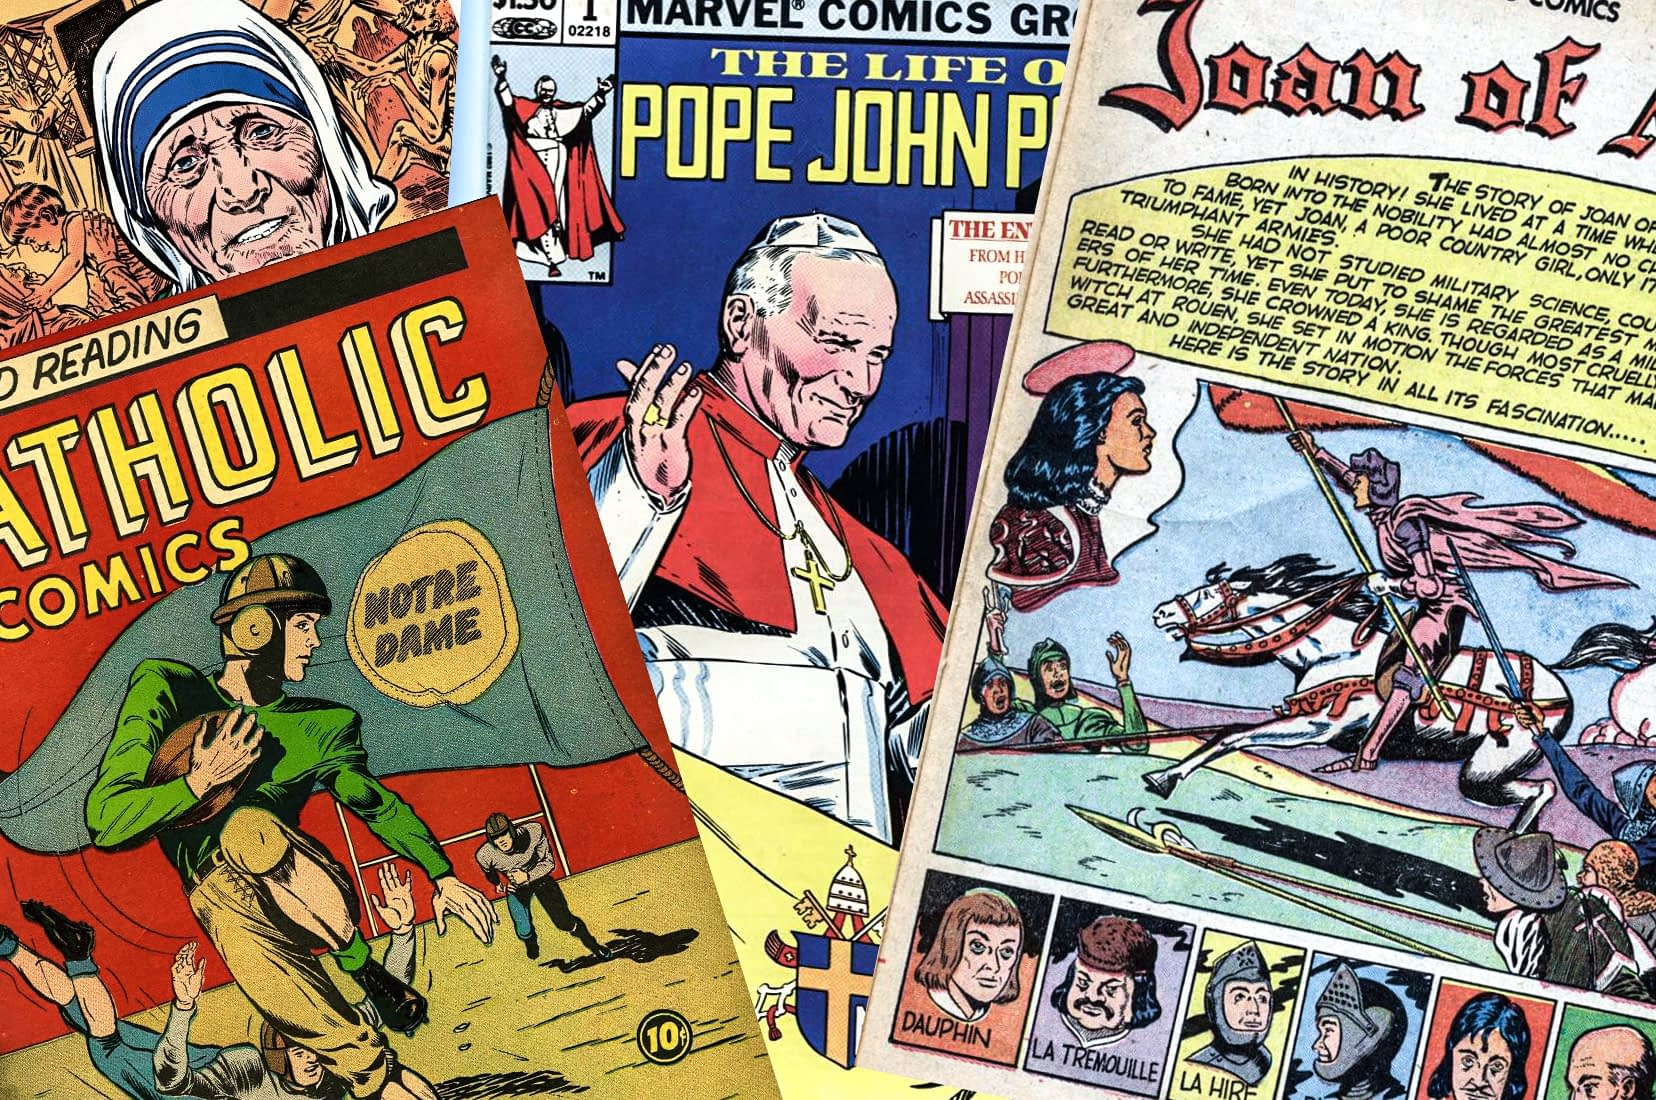 CATHOLIC COMIC BOOKS